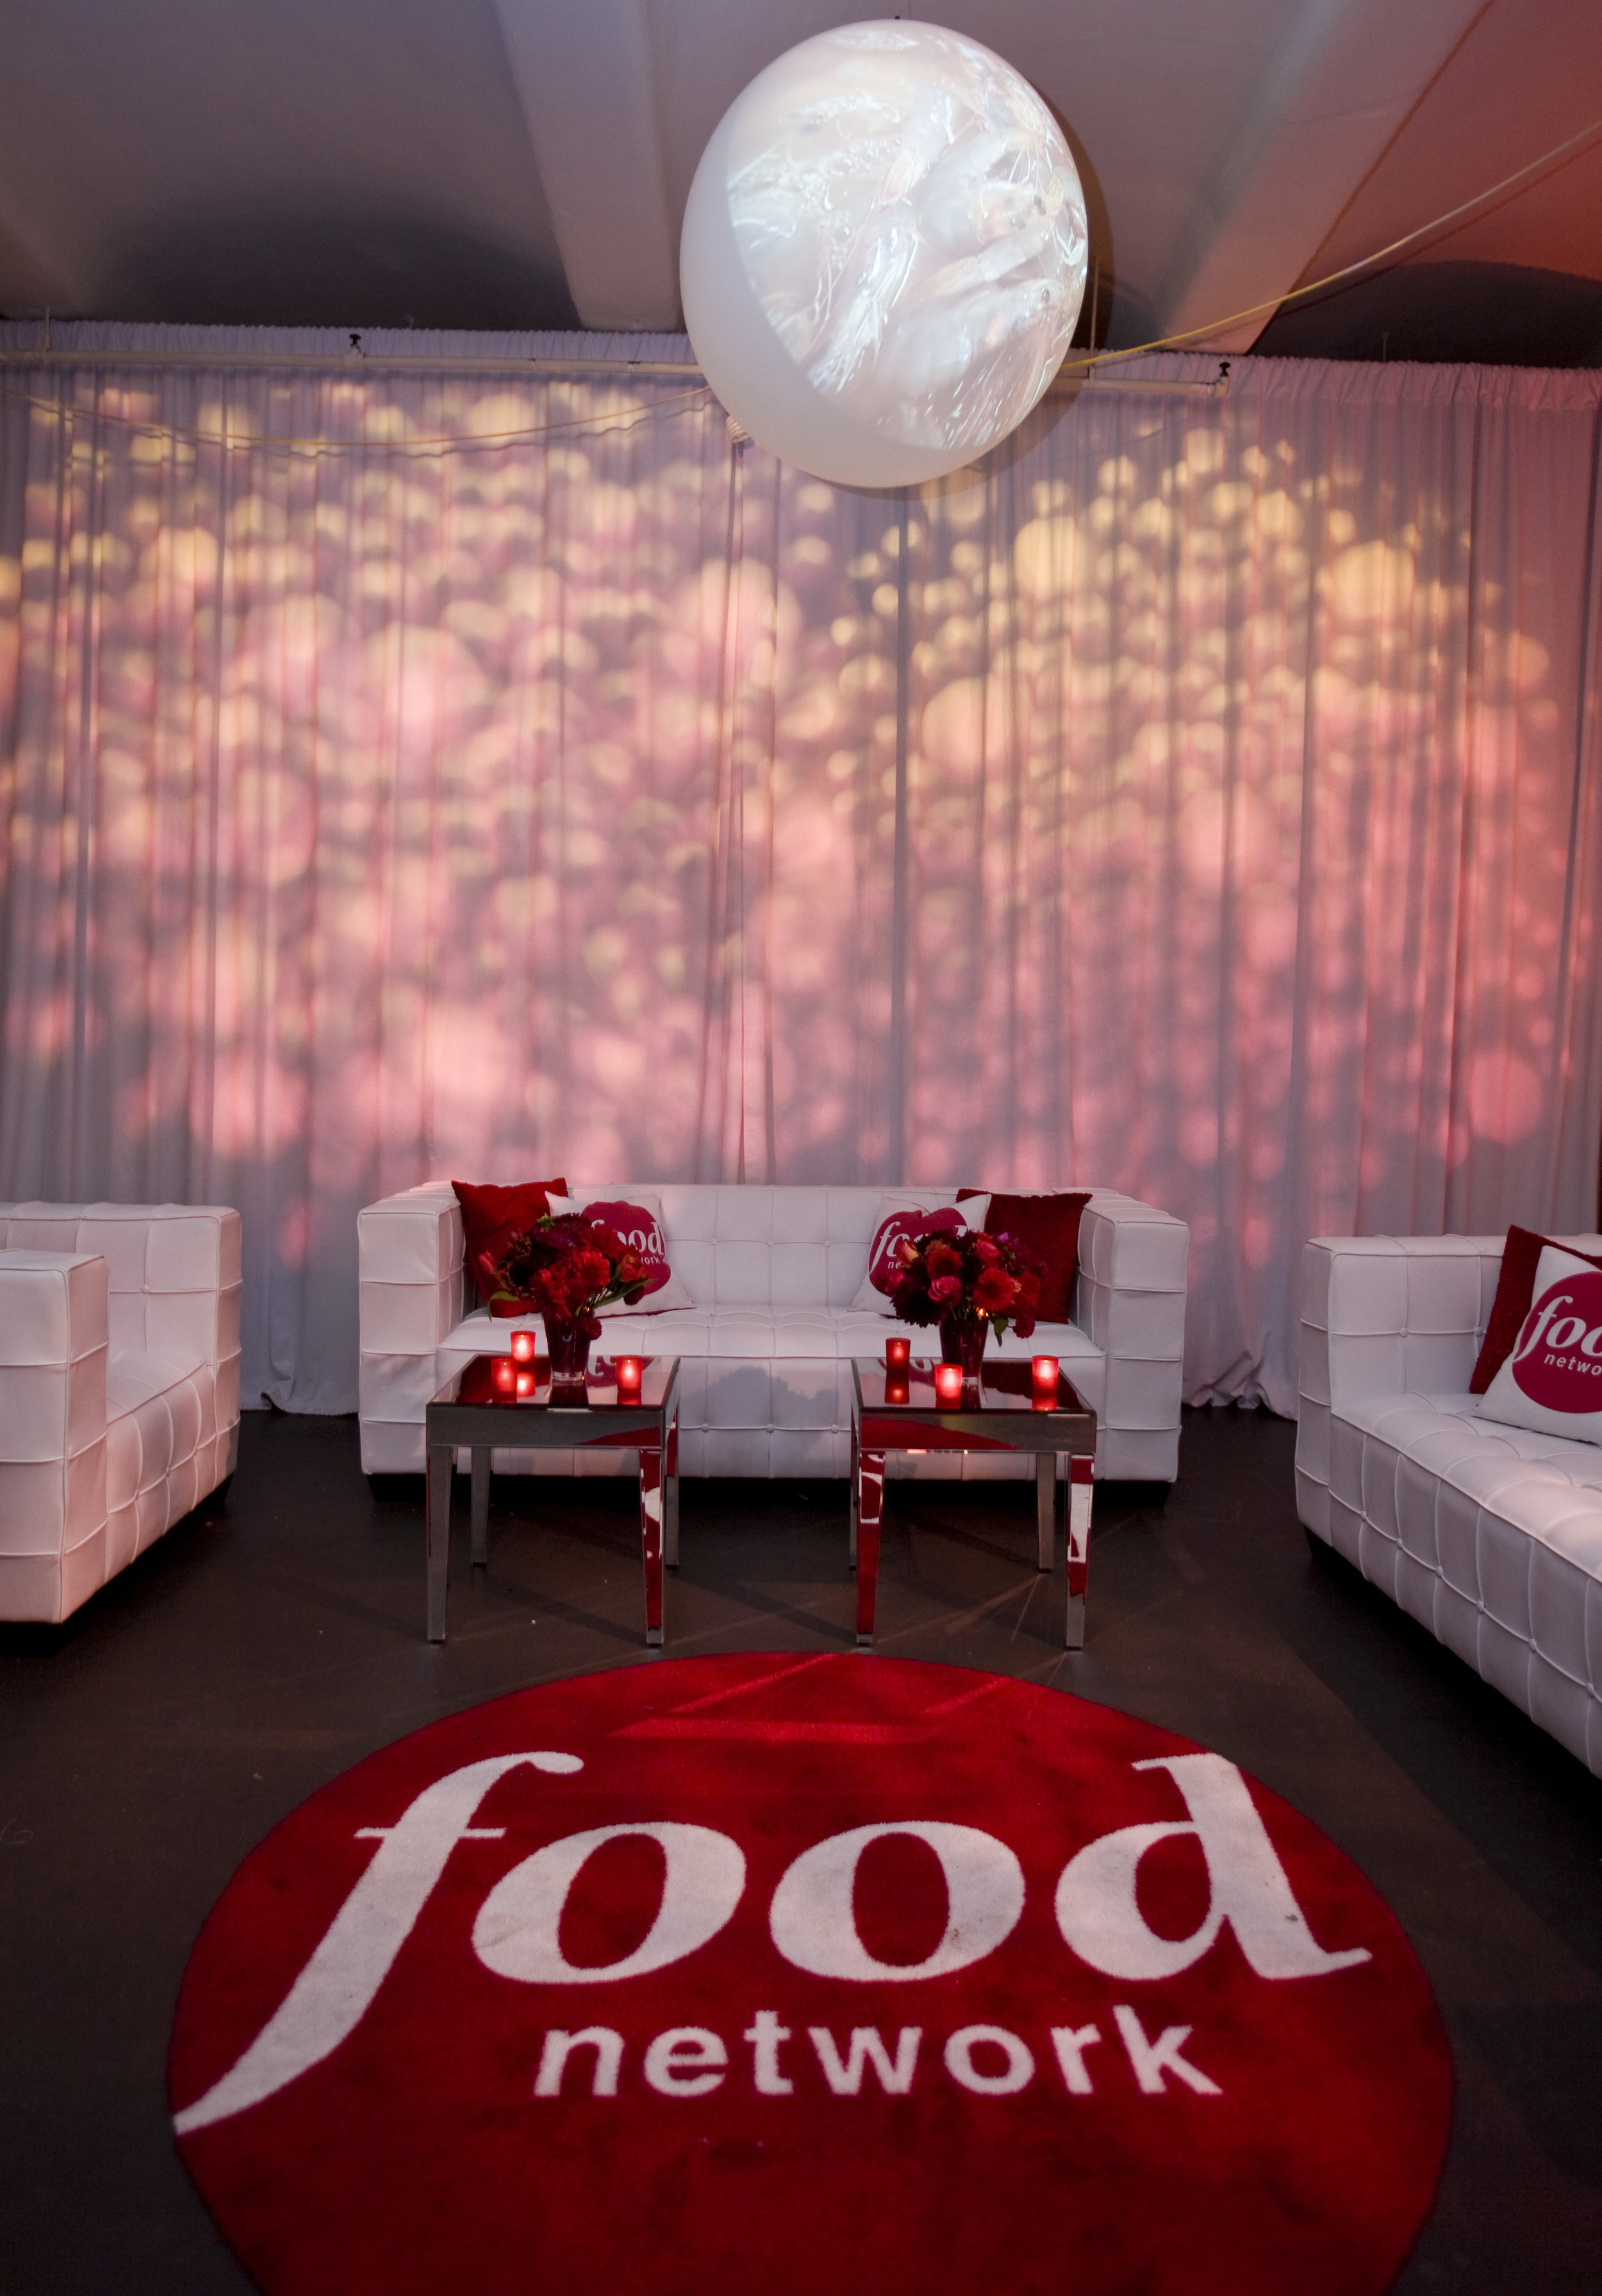 174 FoodNetworkParty.jpg